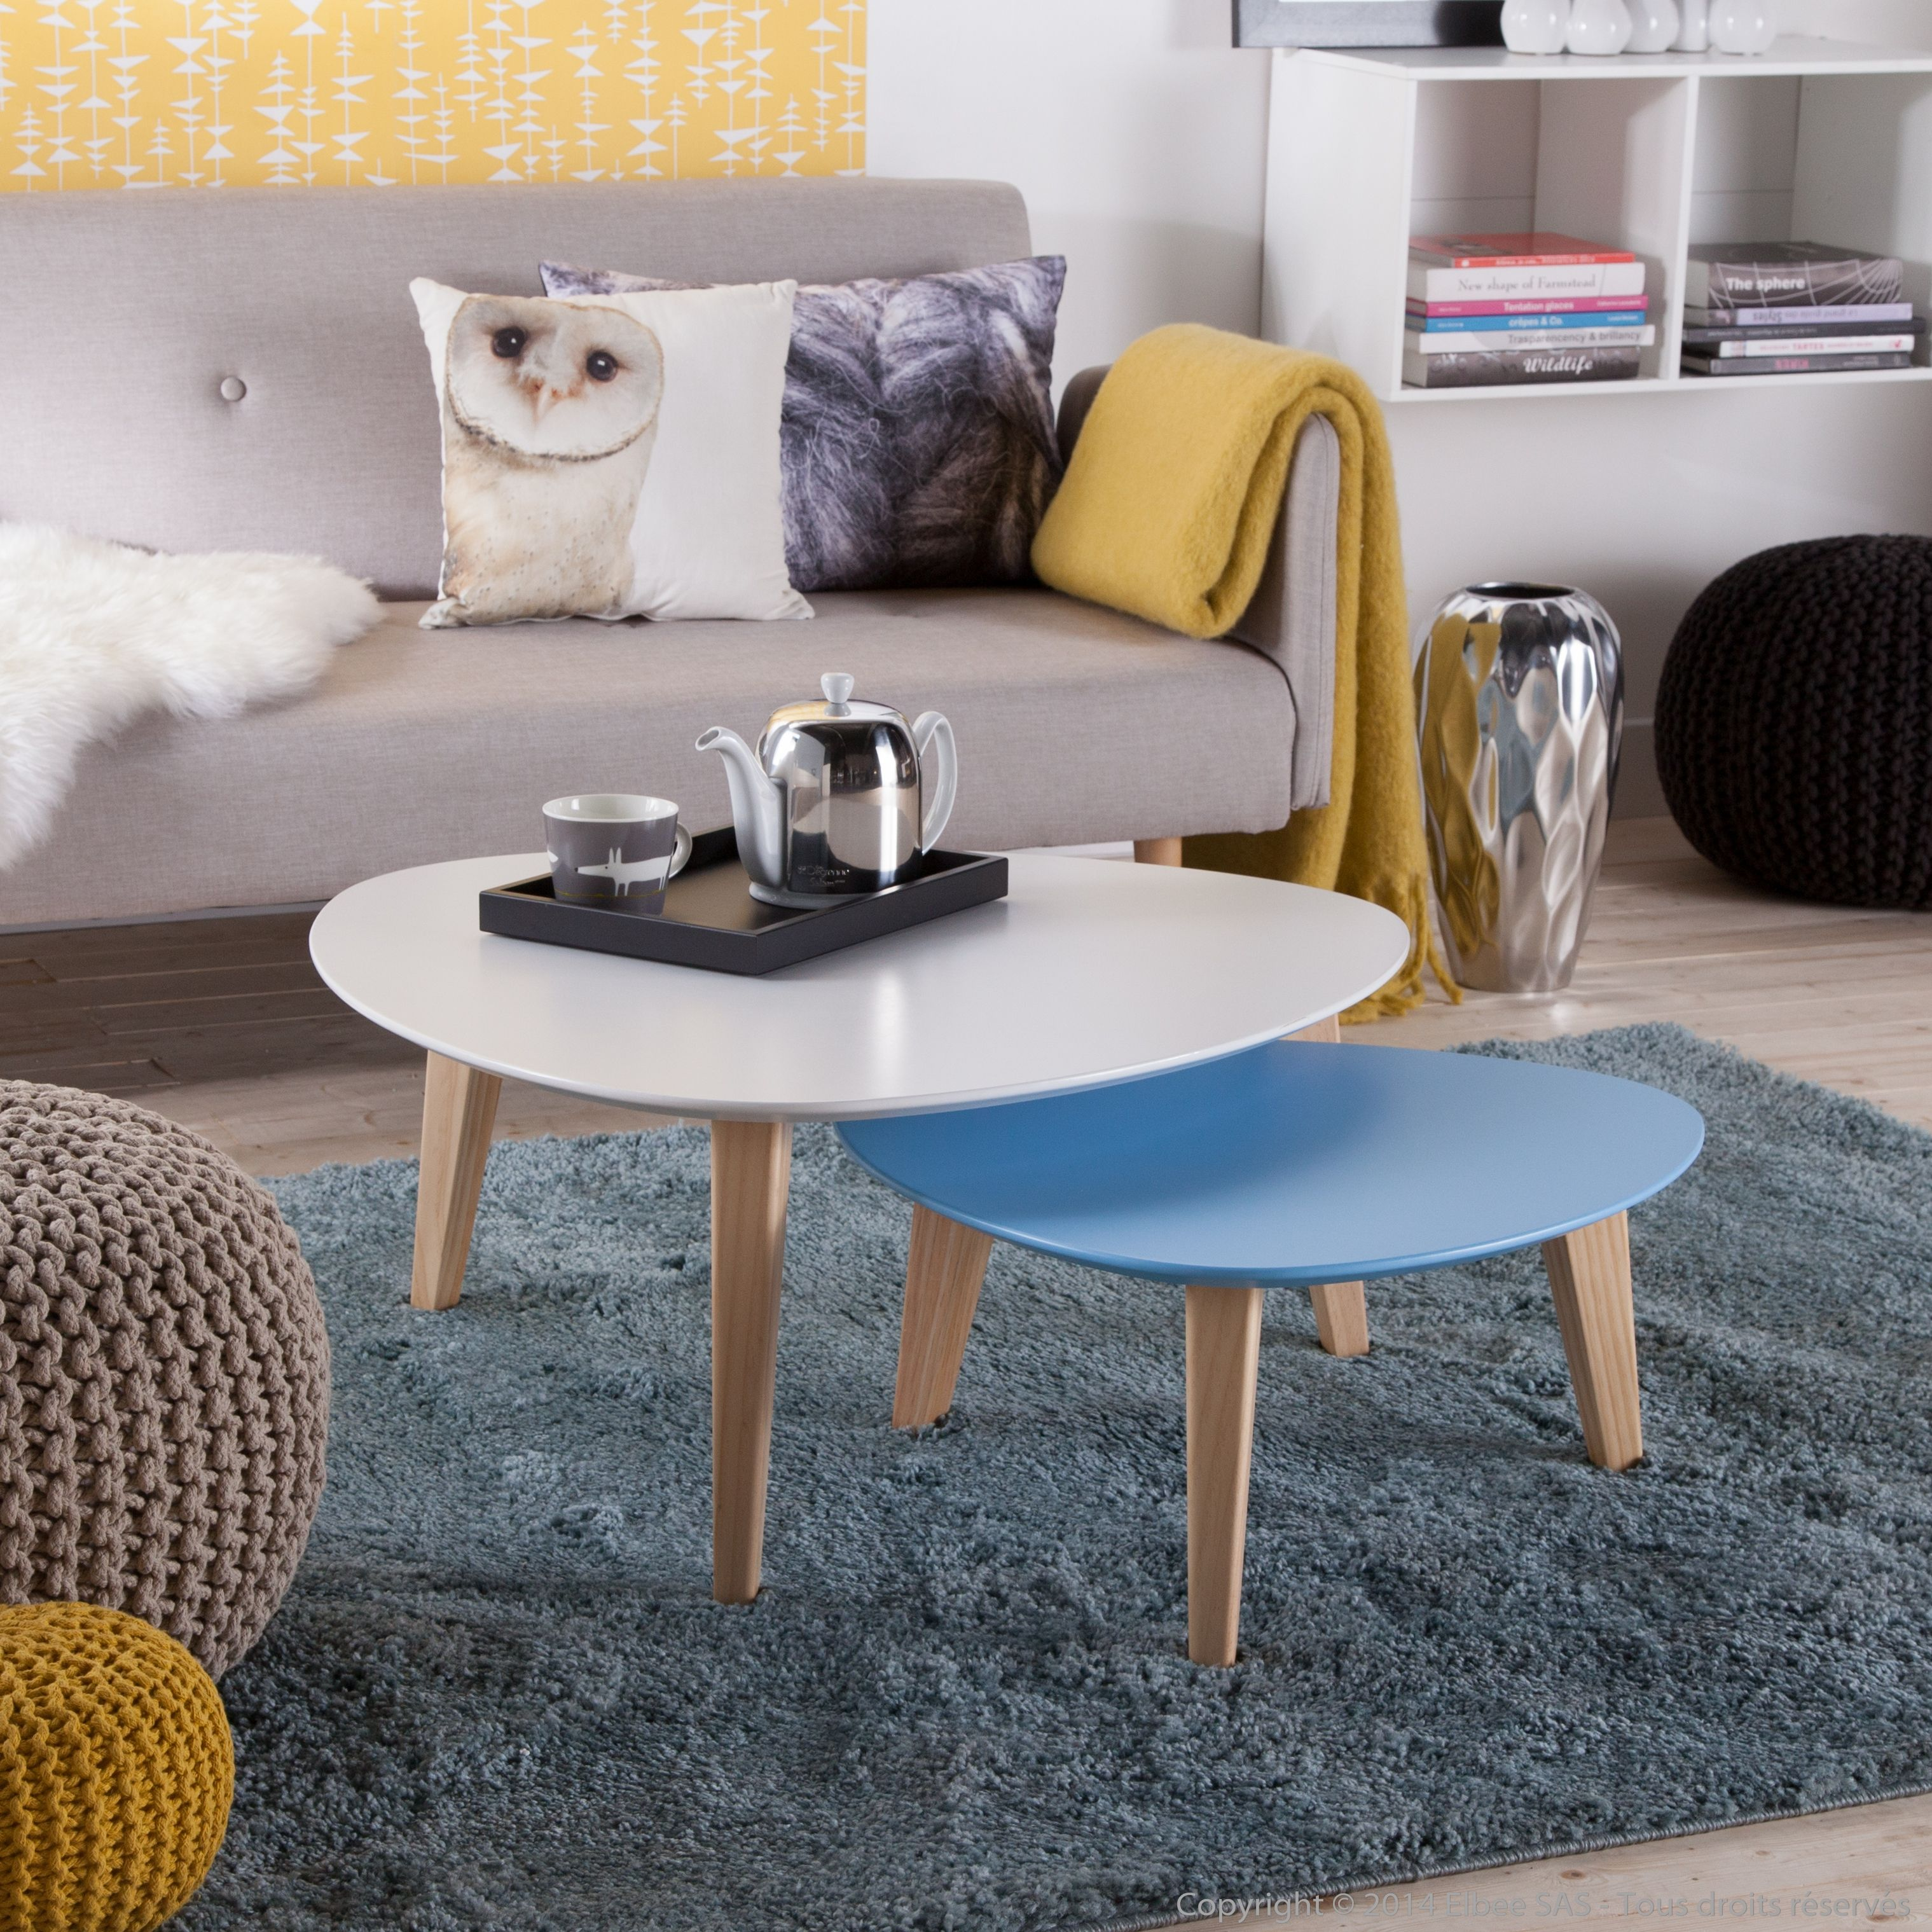 c71b0db7fb172a3e39cd4873ff5fcb2b Meilleur De De Table Basse Scandinave La Redoute